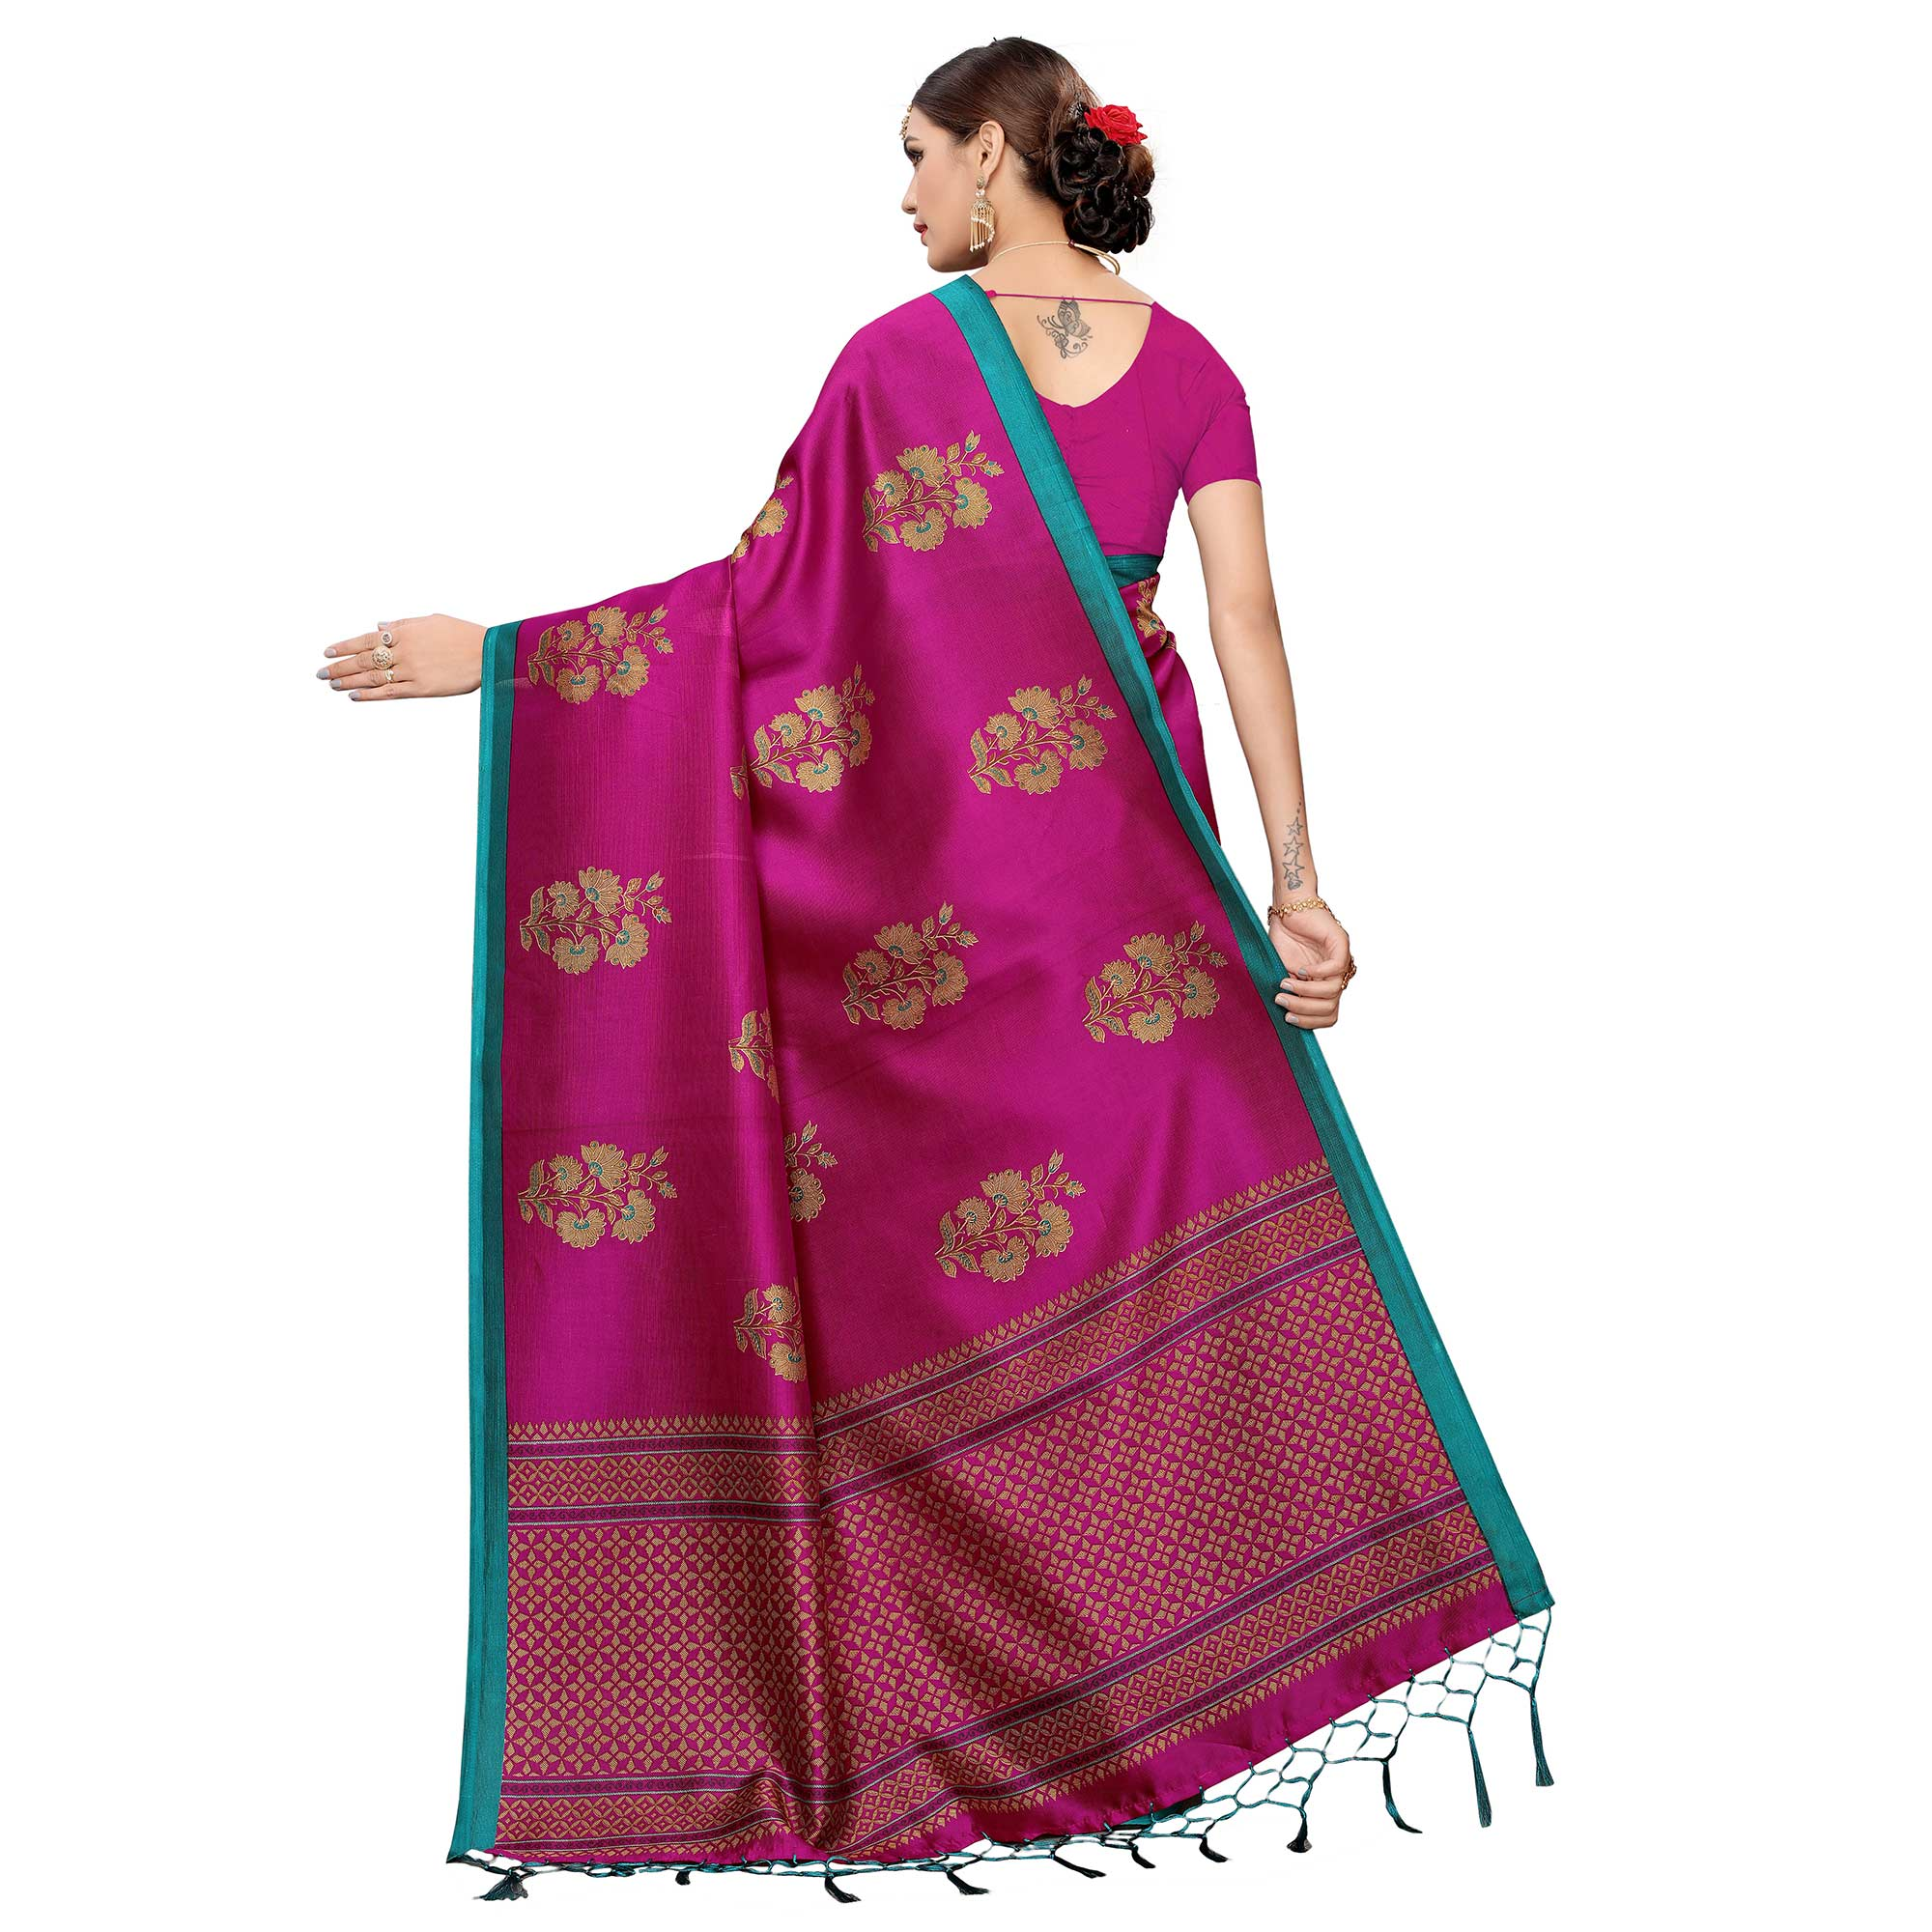 Mesmerising Dark Magenta Pink Colored Festive Wear Art Silk Saree